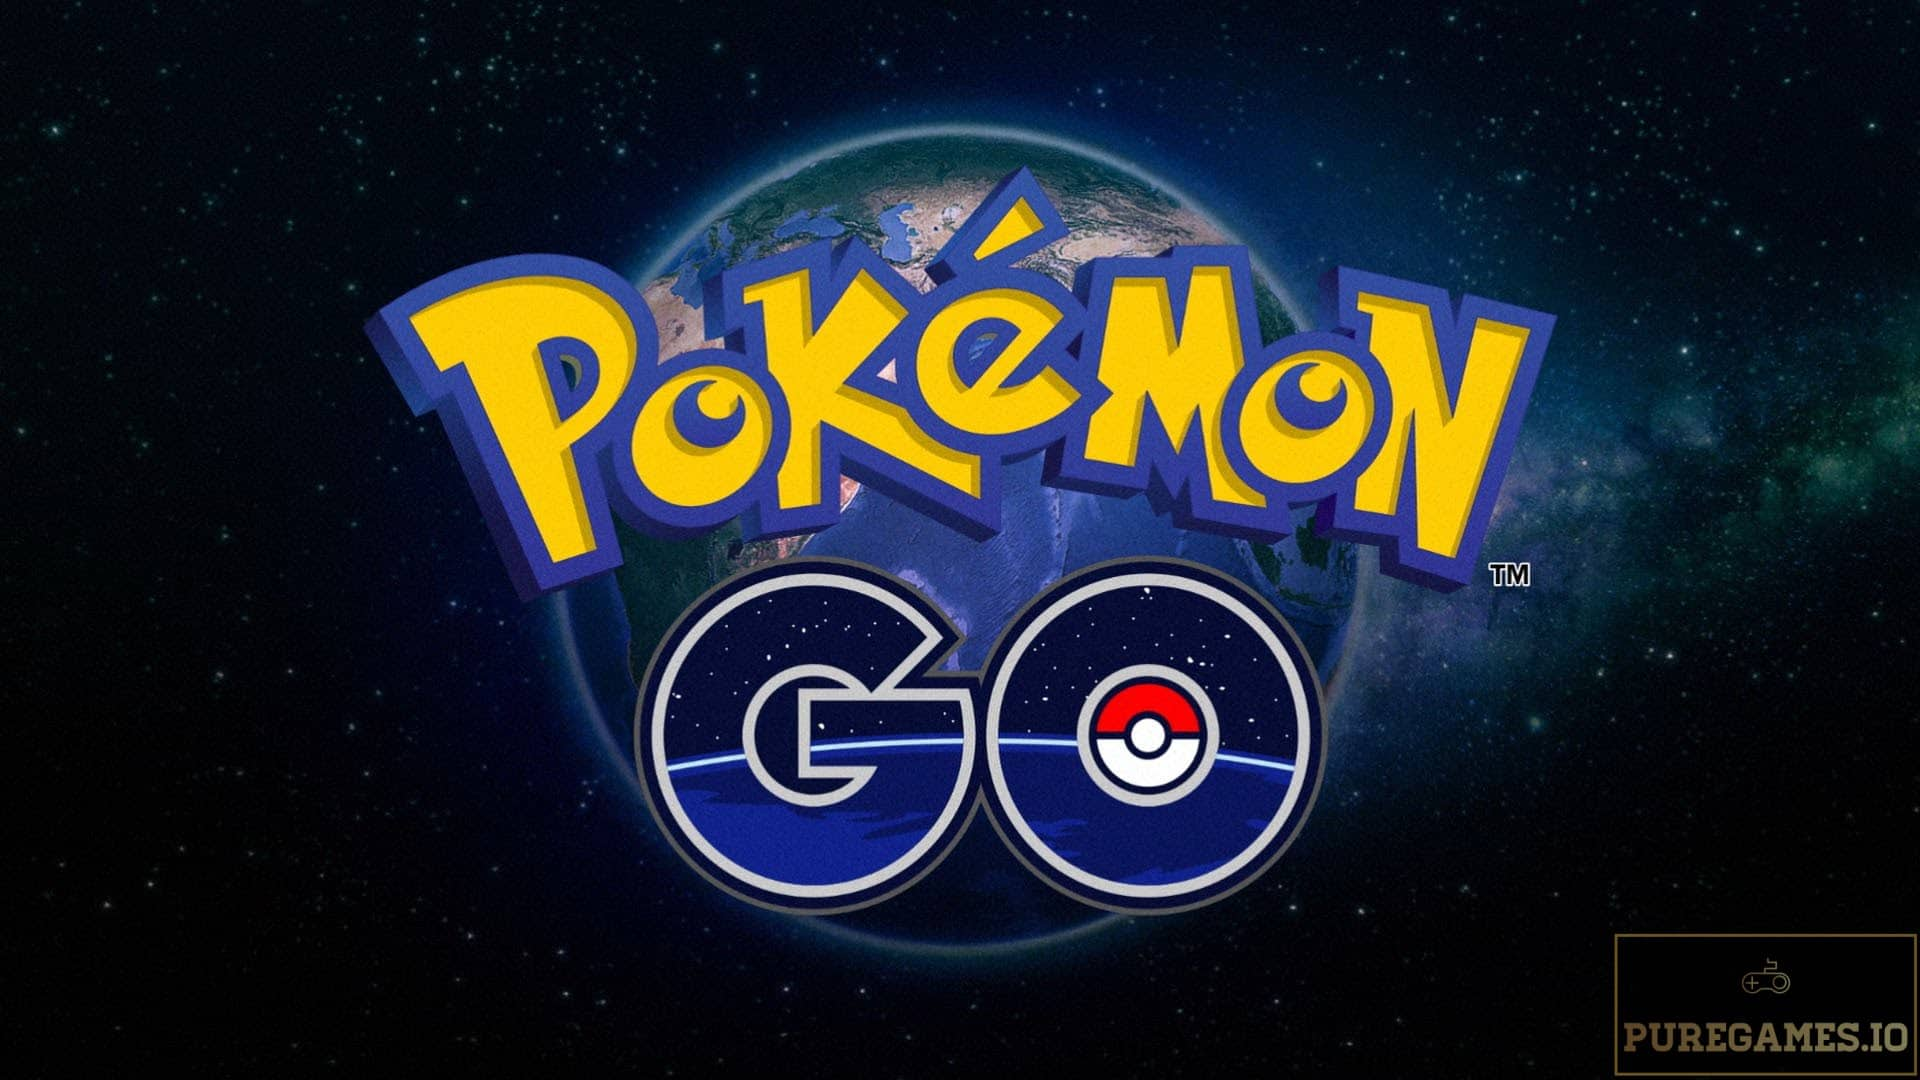 Download Pokémon Go APK – For Android/iOS 9